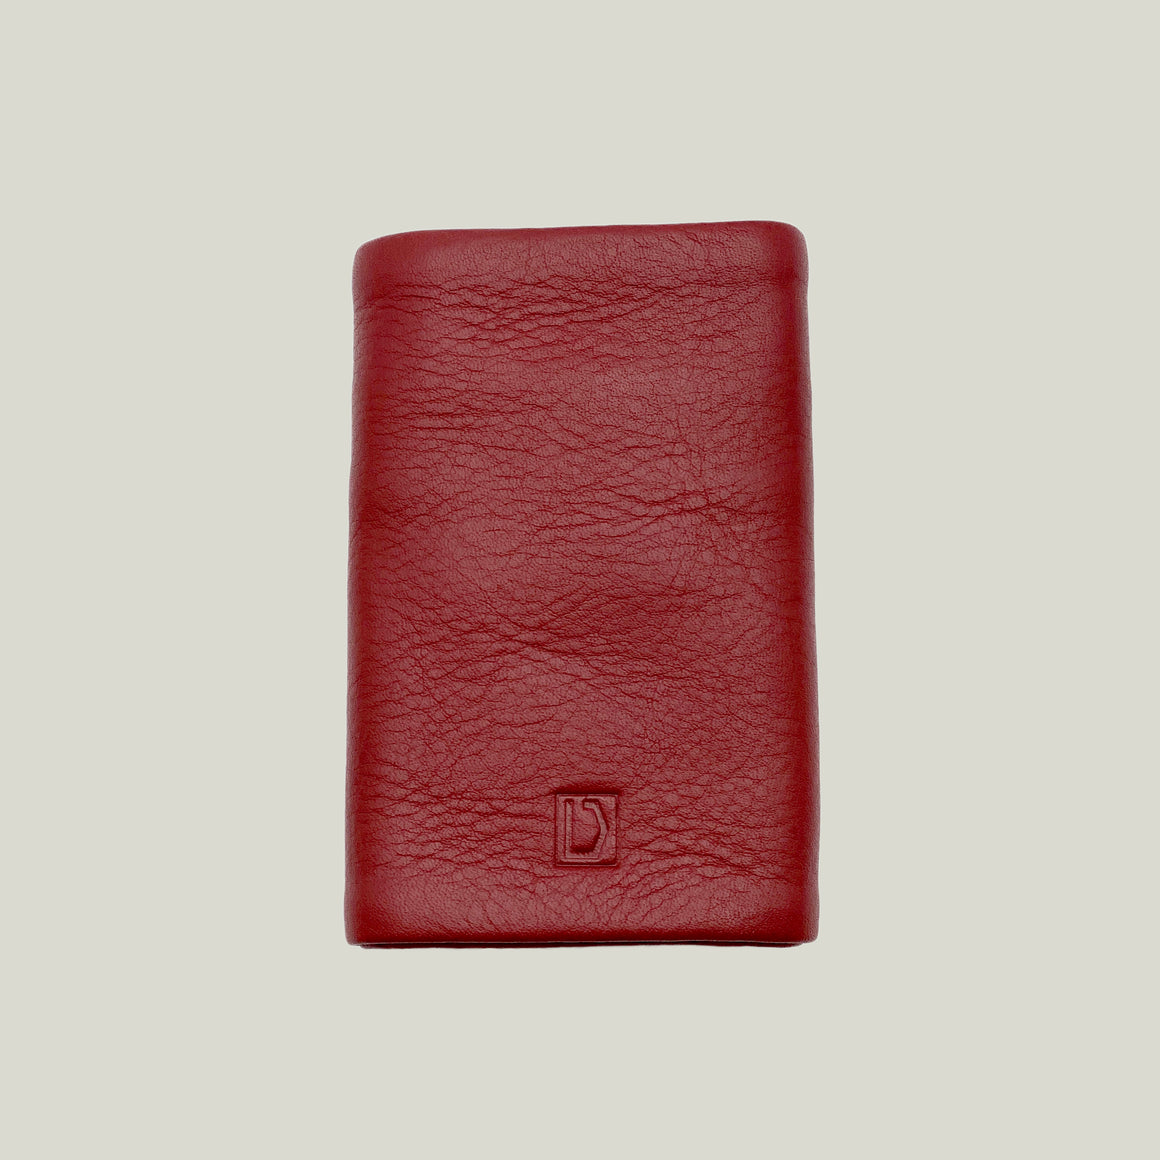 Key Pouch Wallet 03 Leather